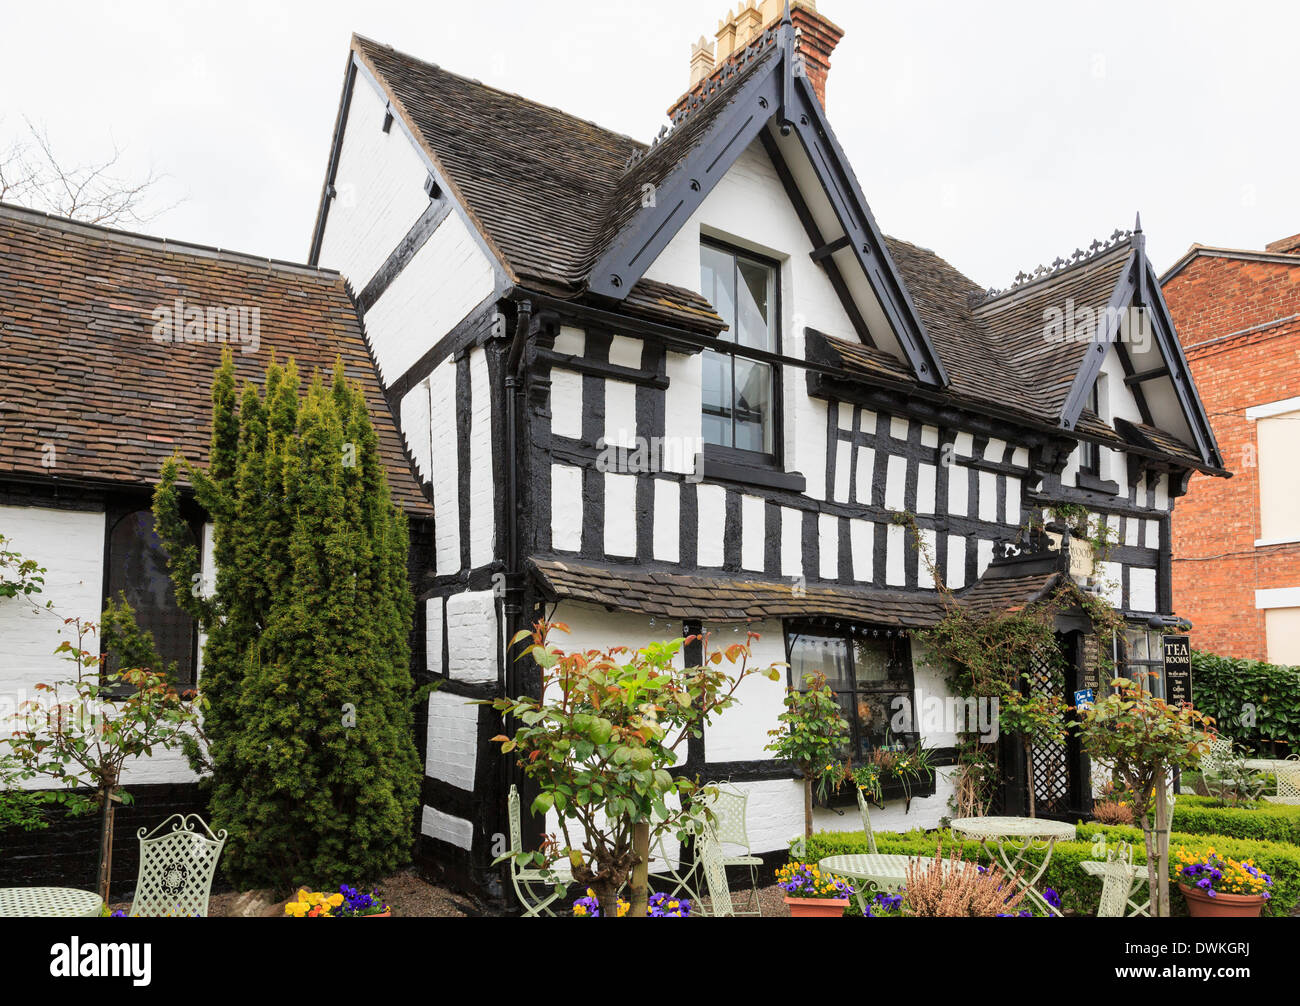 Smallwood Lodge tearooms in medieval timbered building where Anne Boleyn once stayed in town. Newport, Shropshire, West Midlands, England, UK, Britain - Stock Image